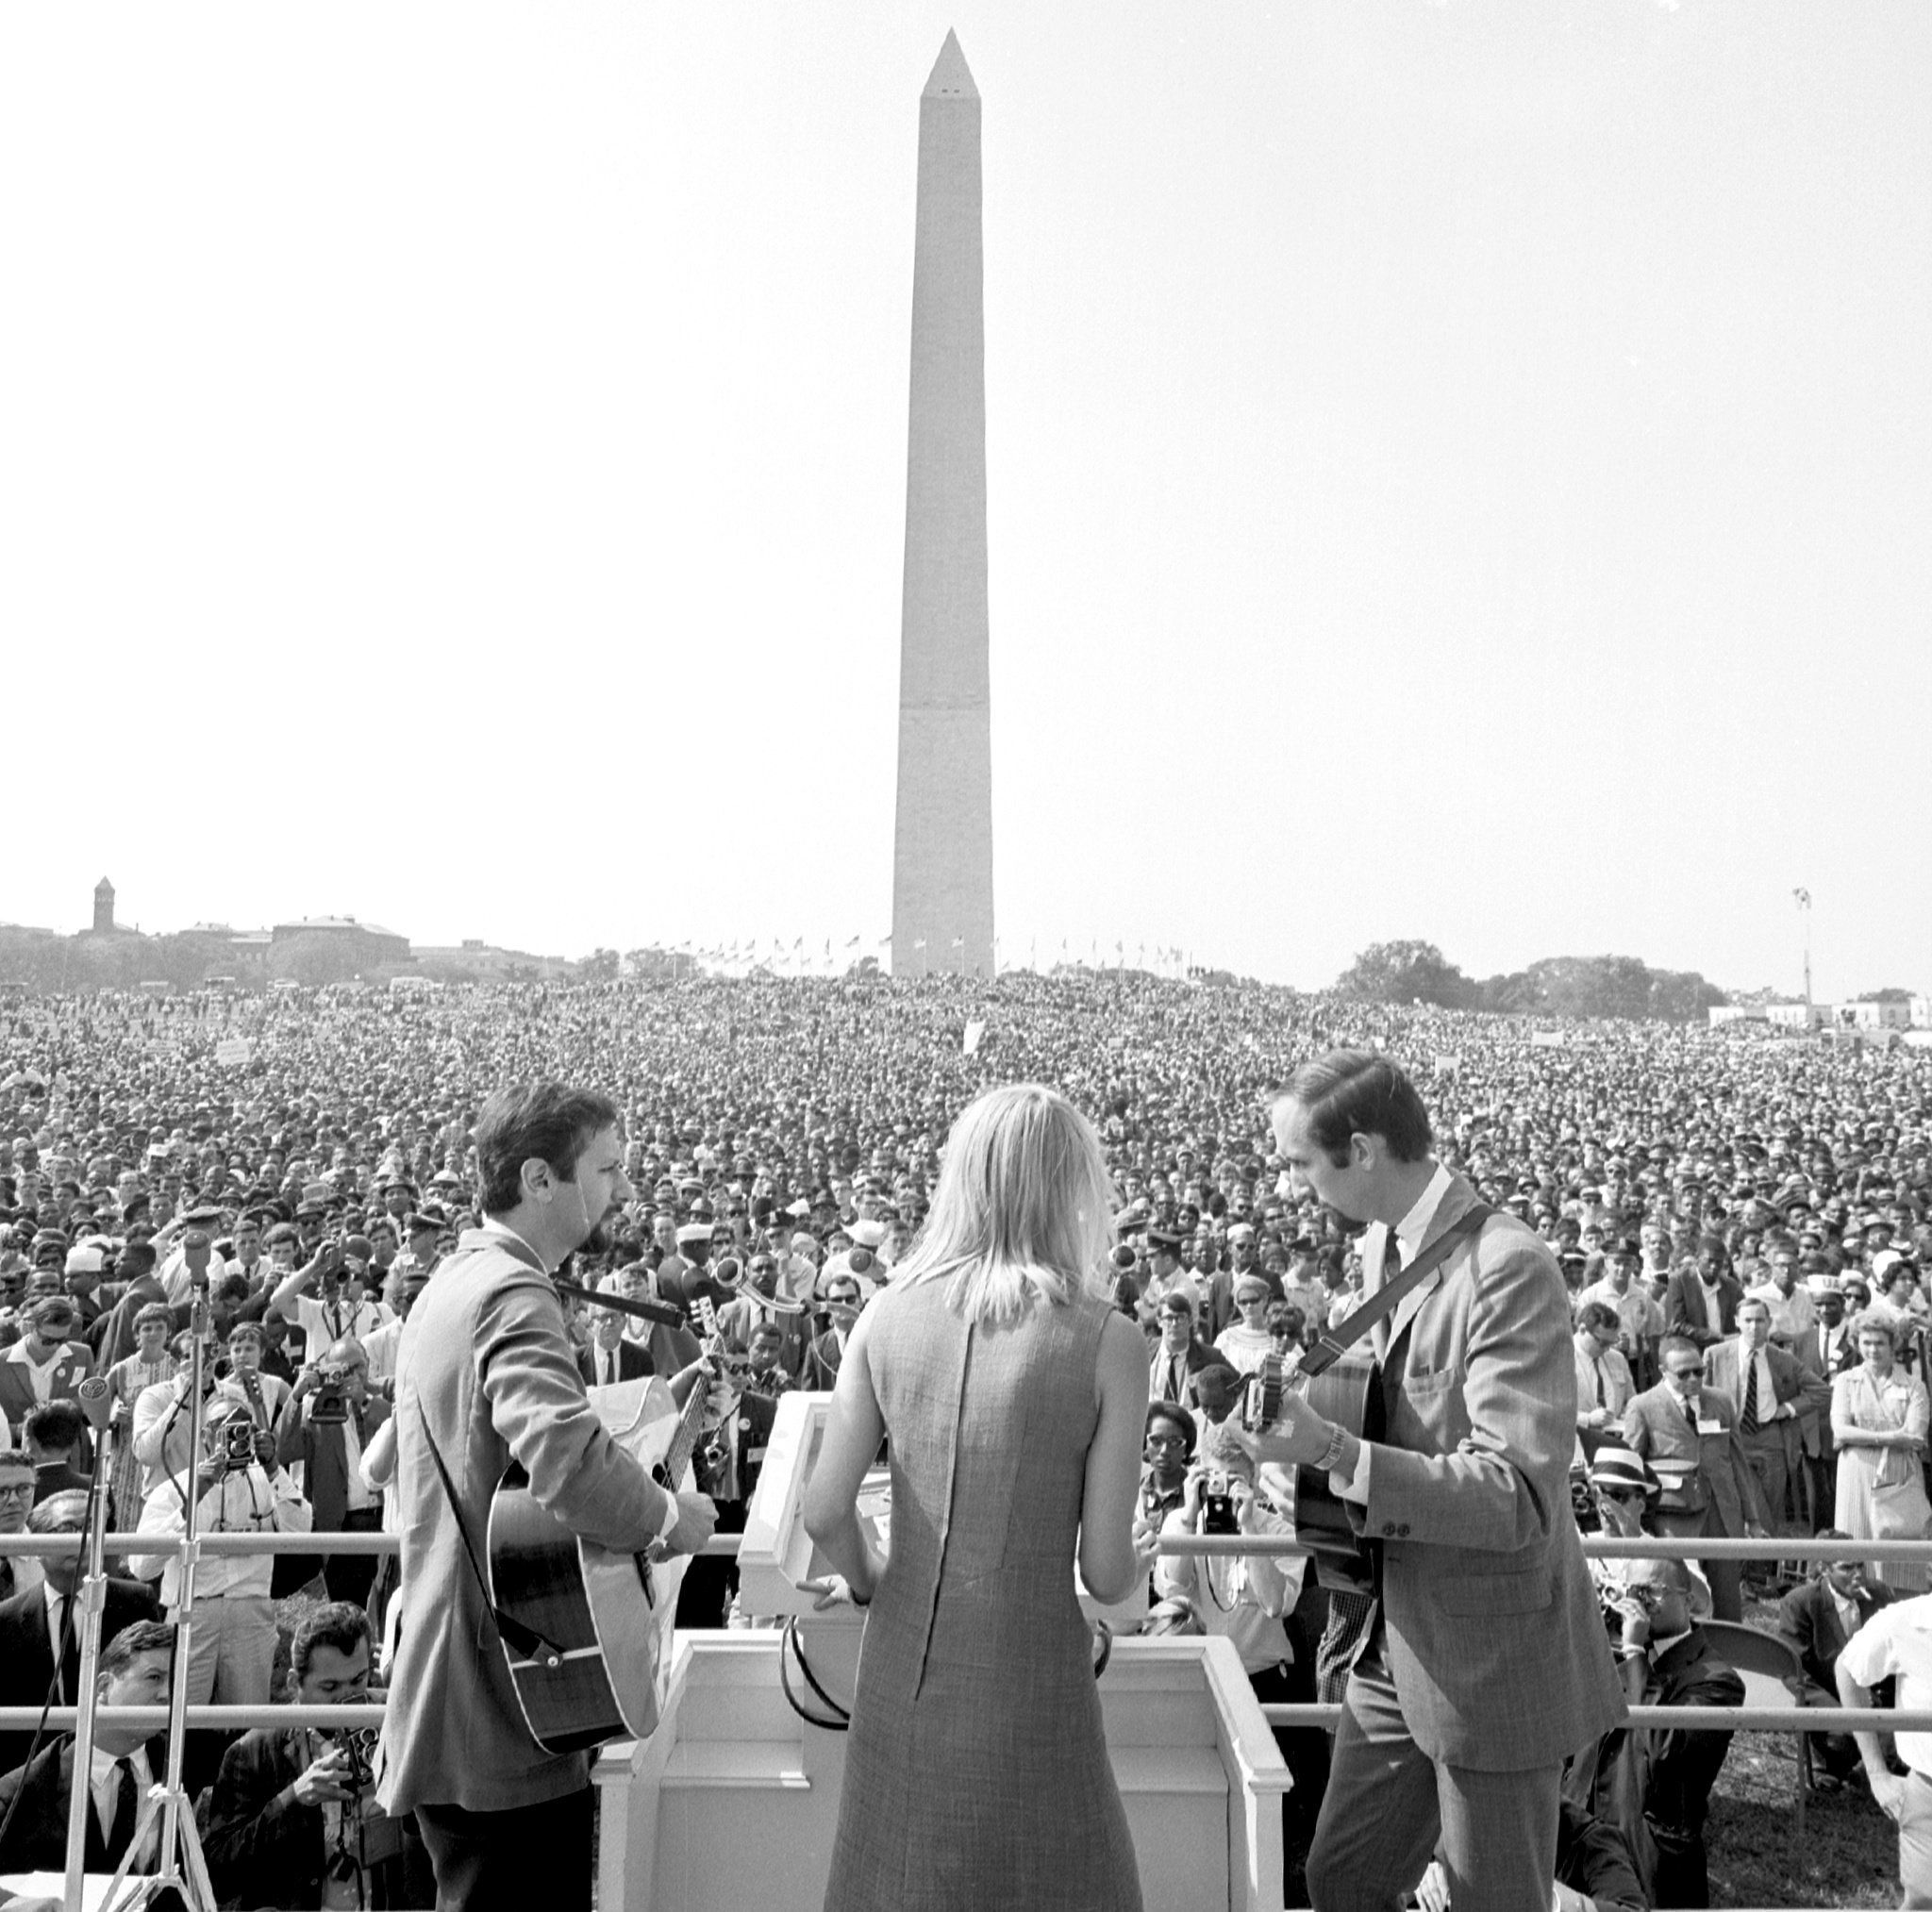 Peter, Paul and Mary sing during the March on Washington for Jobs and Freedom. August 28, 1963